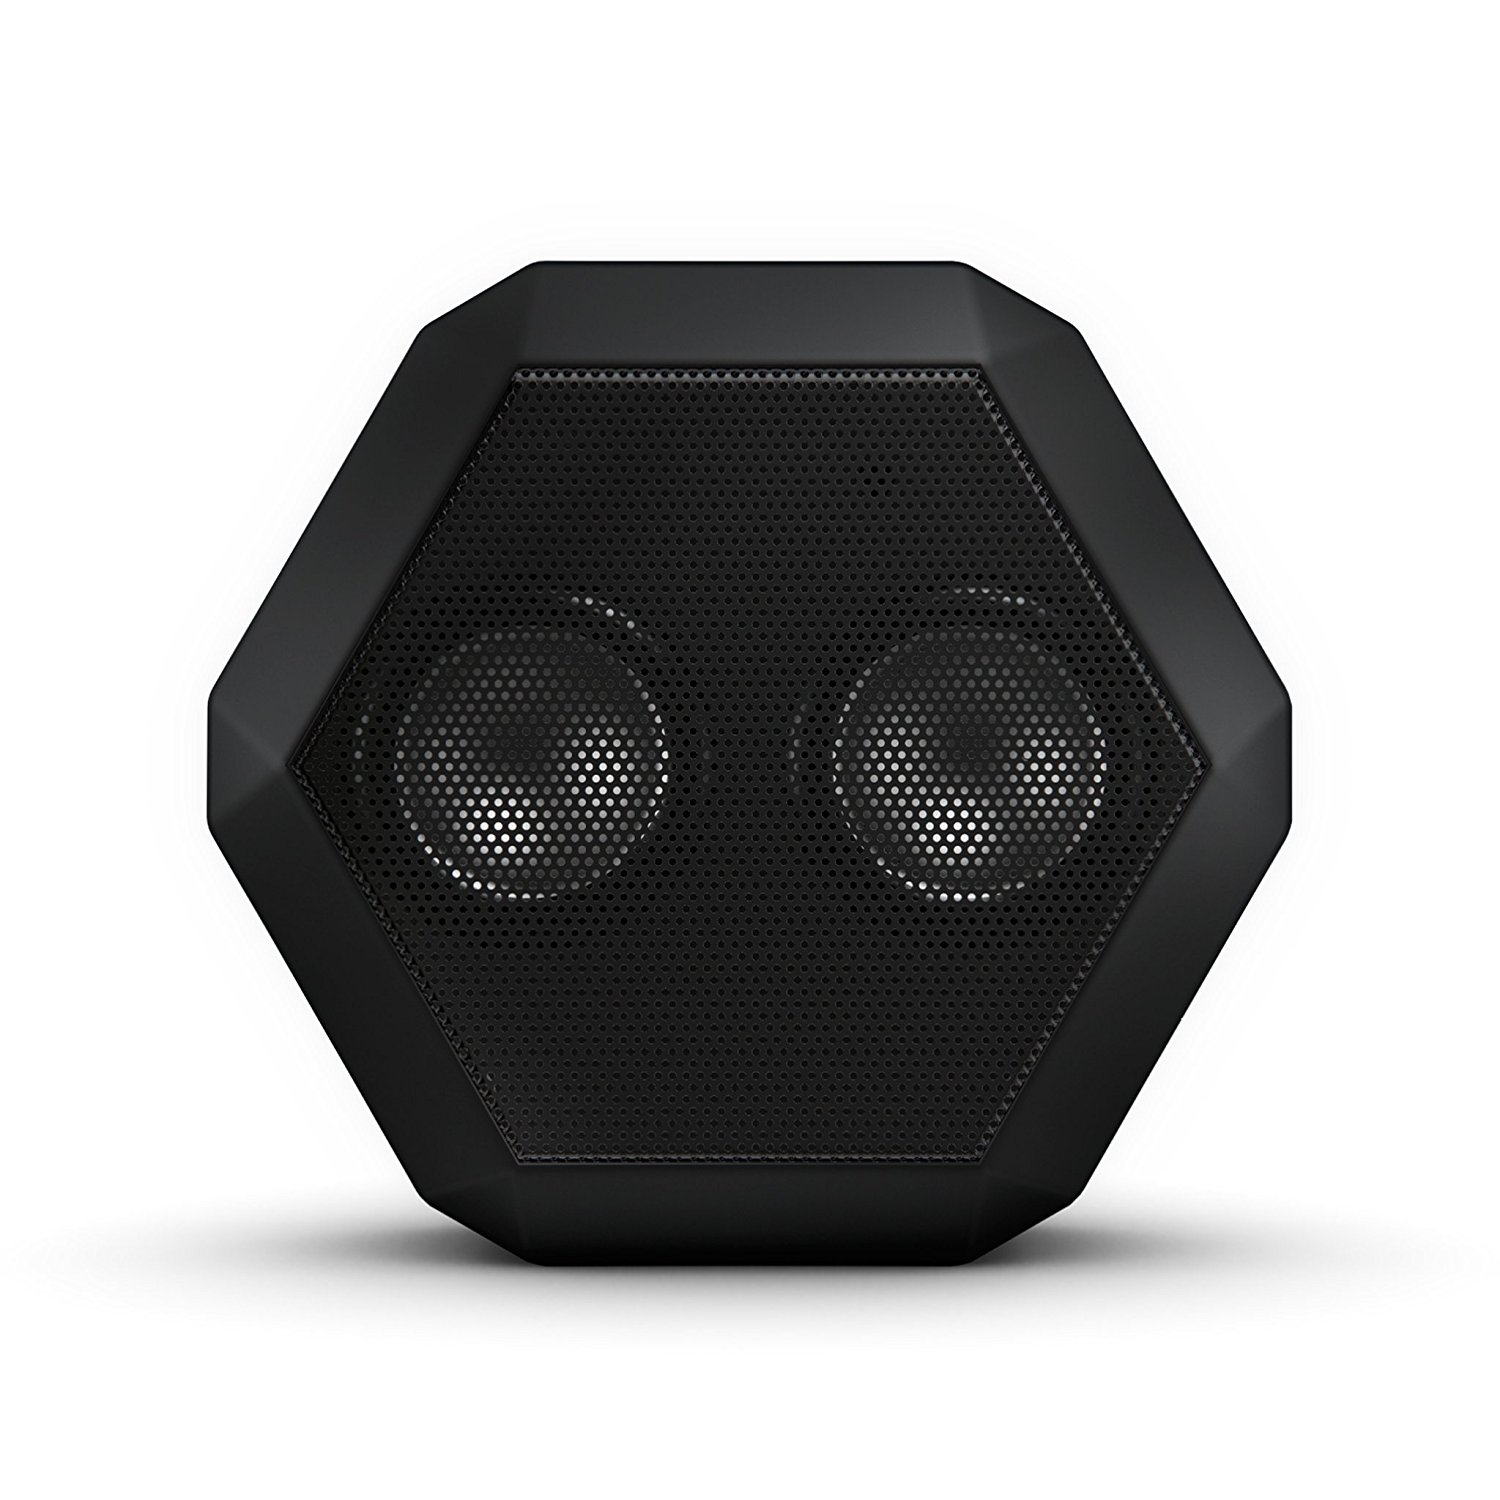 Boombotix Boombot REX Wireless Ultraportable Weatherproof Bluetooth Speaker Review